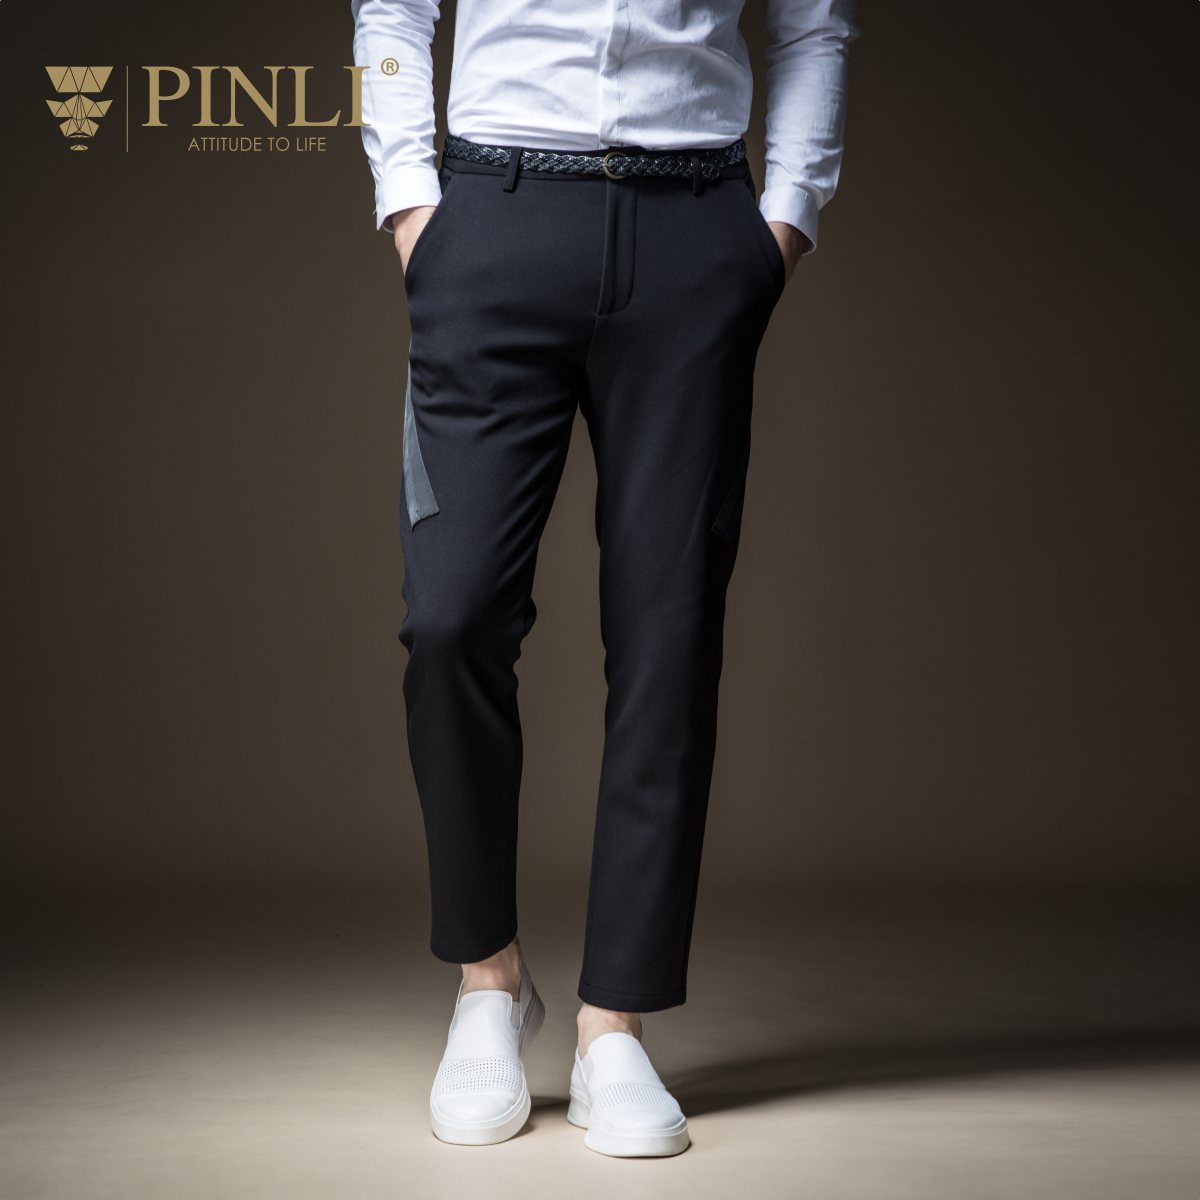 2019 Pants Pepe Pinli Product Made Fall New Men's Cultivate Morality Leisure Trousers B183517488 Velvet Thickening And Feet